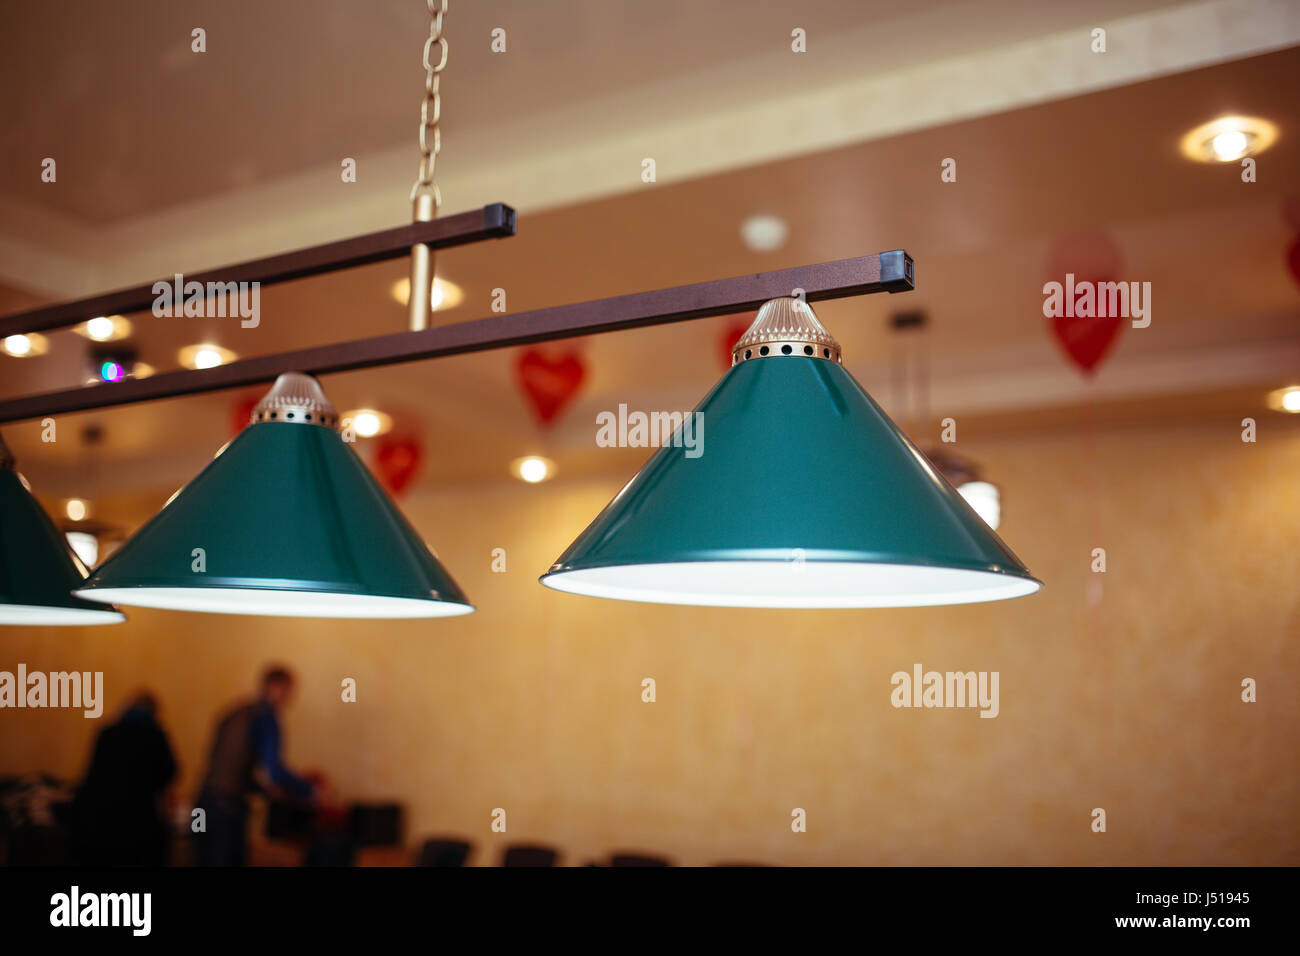 Billiard lamps above the billiard table are ready for the game. - Stock Image